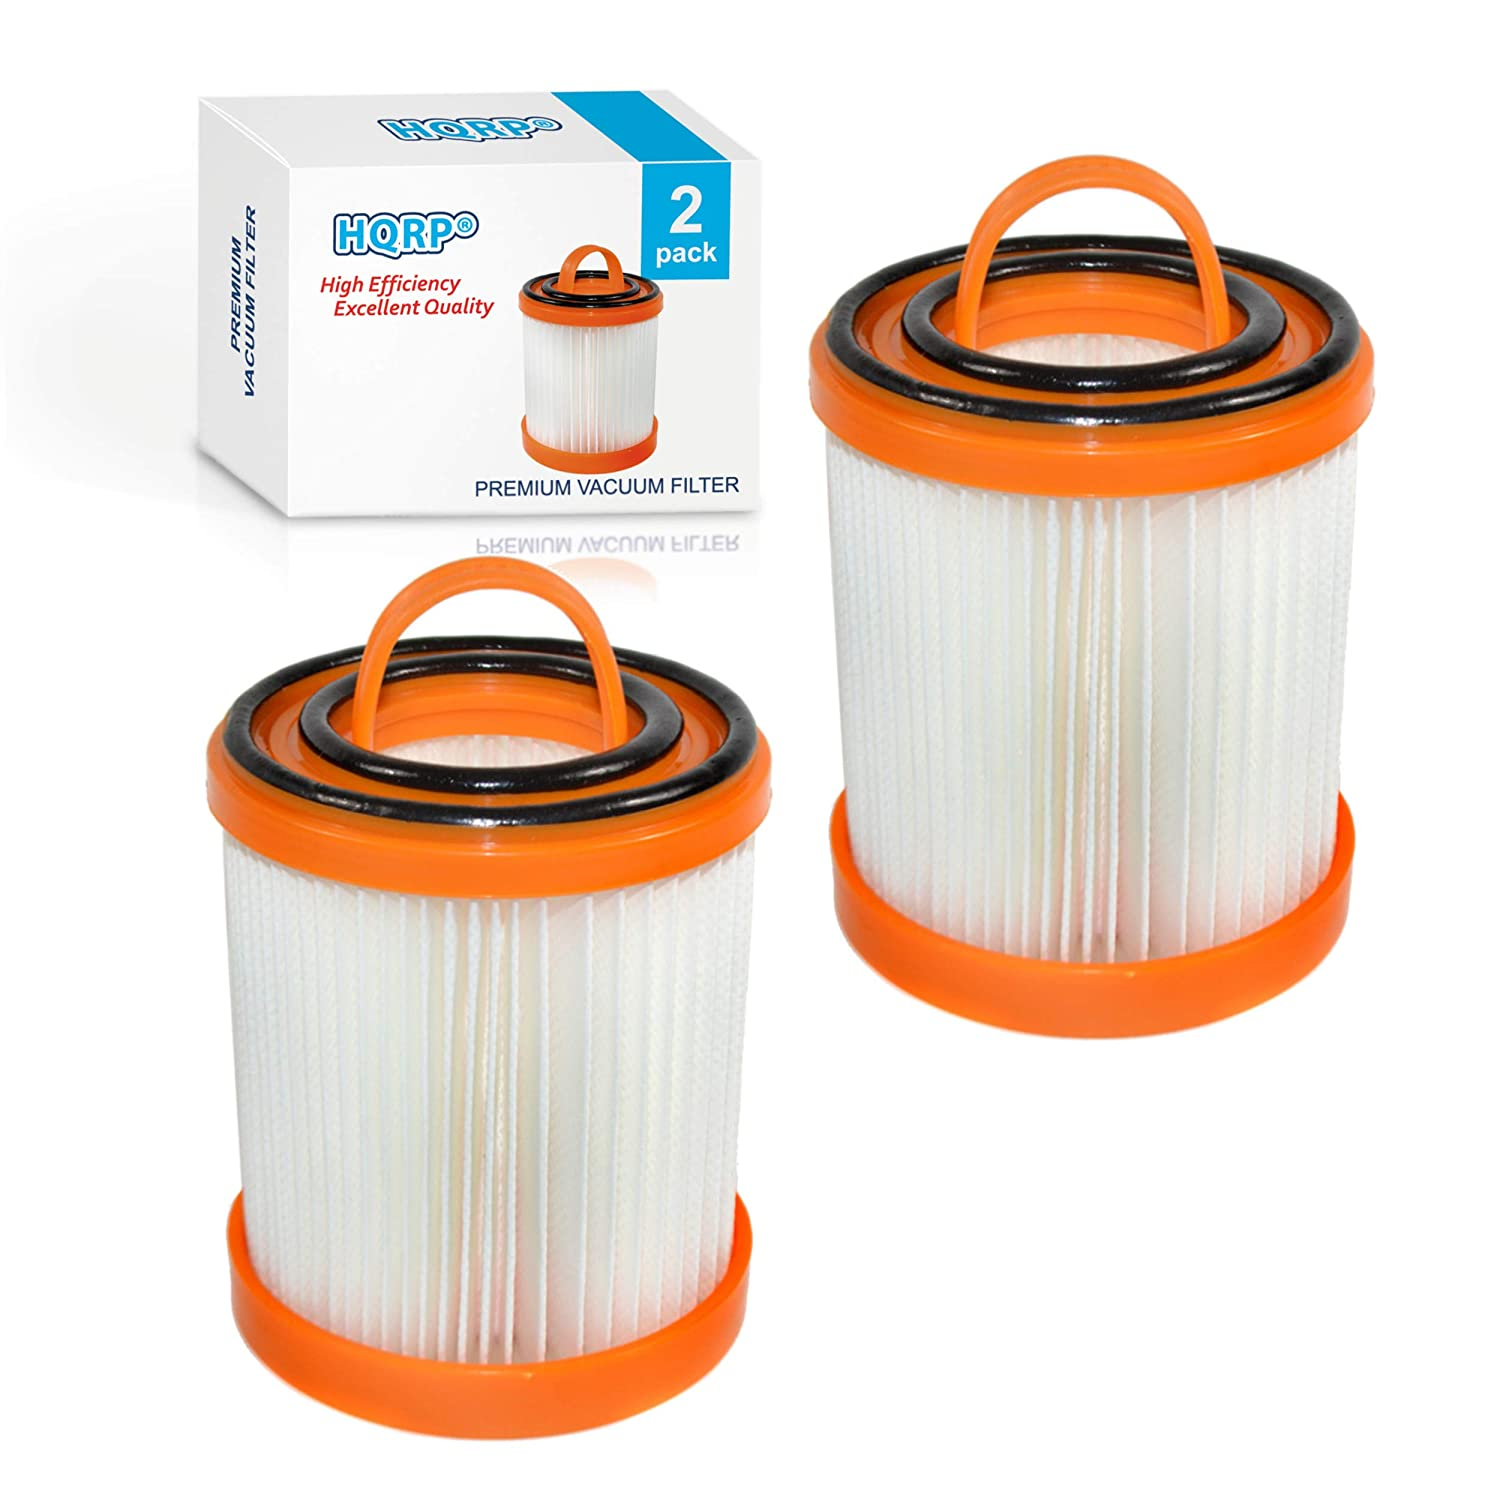 HQRP 2-Pack Dust Cup Filter Works with Eureka 5700 5740A 5810A 5811A 5812A 5813AV 5815AV 5840 5841 5856 5857 5860 Litespeed Whirlwind Vacuum Cleaners, DCF-3 DCF3 62136A Replacement